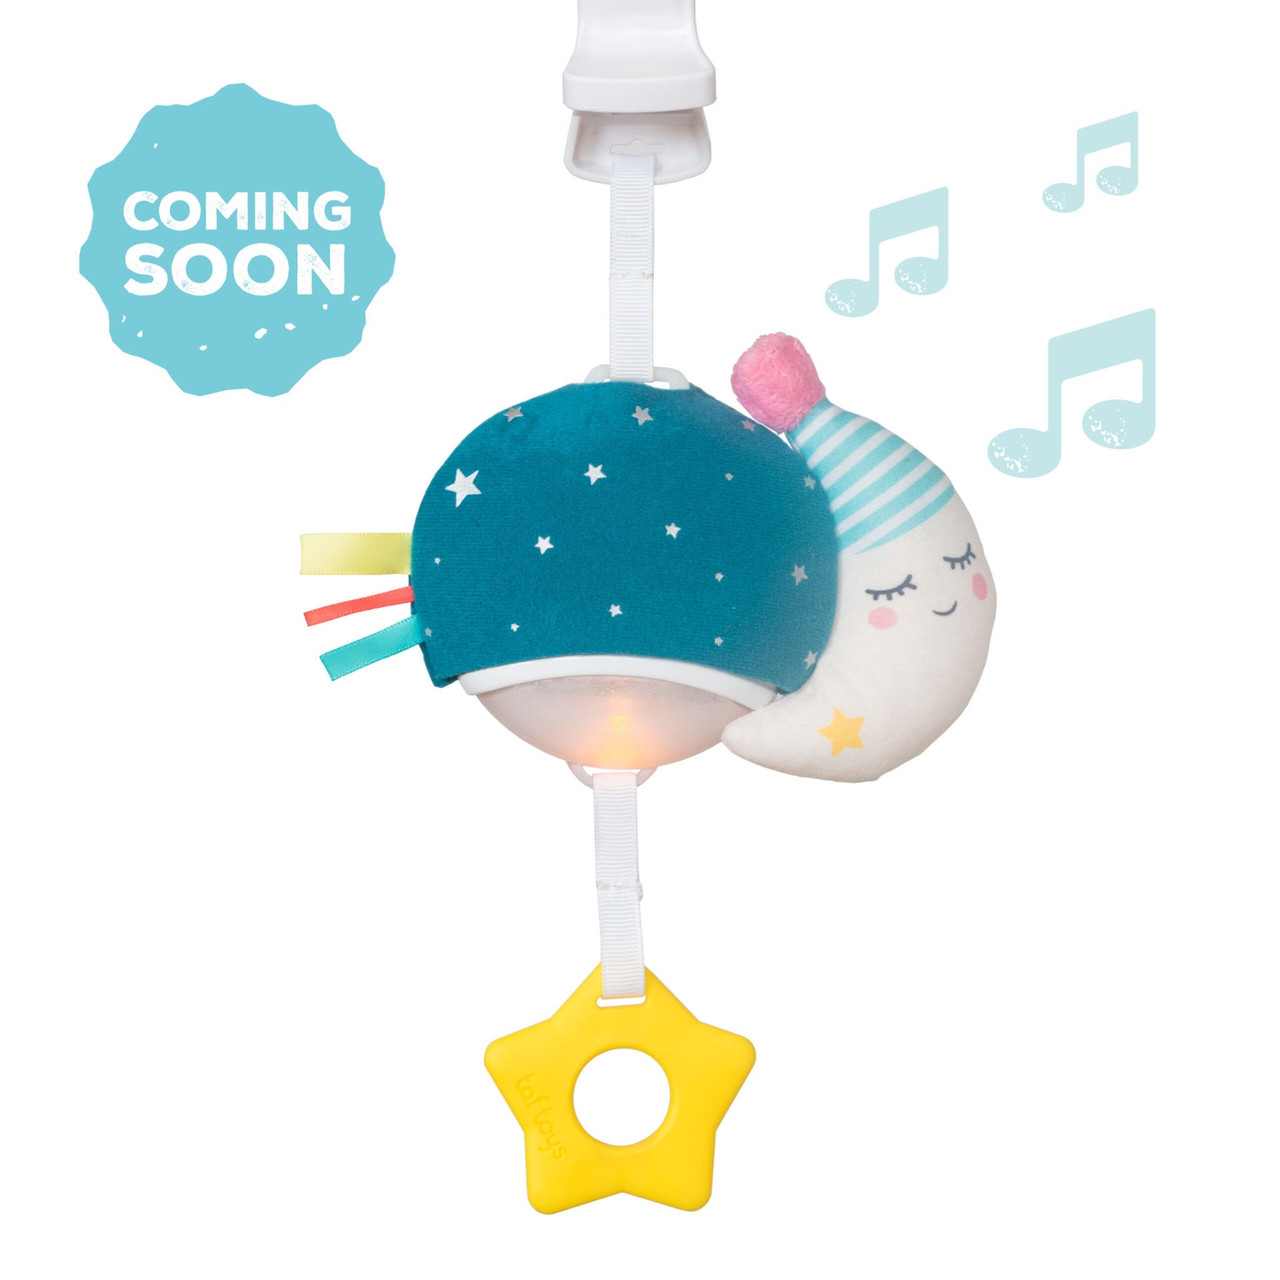 TAF Toys Musical Mini Moon at Baby Barn Discounts Musical toy for on-the-go entertainment accompanied by colorful changing light to entertain babies while out & about.